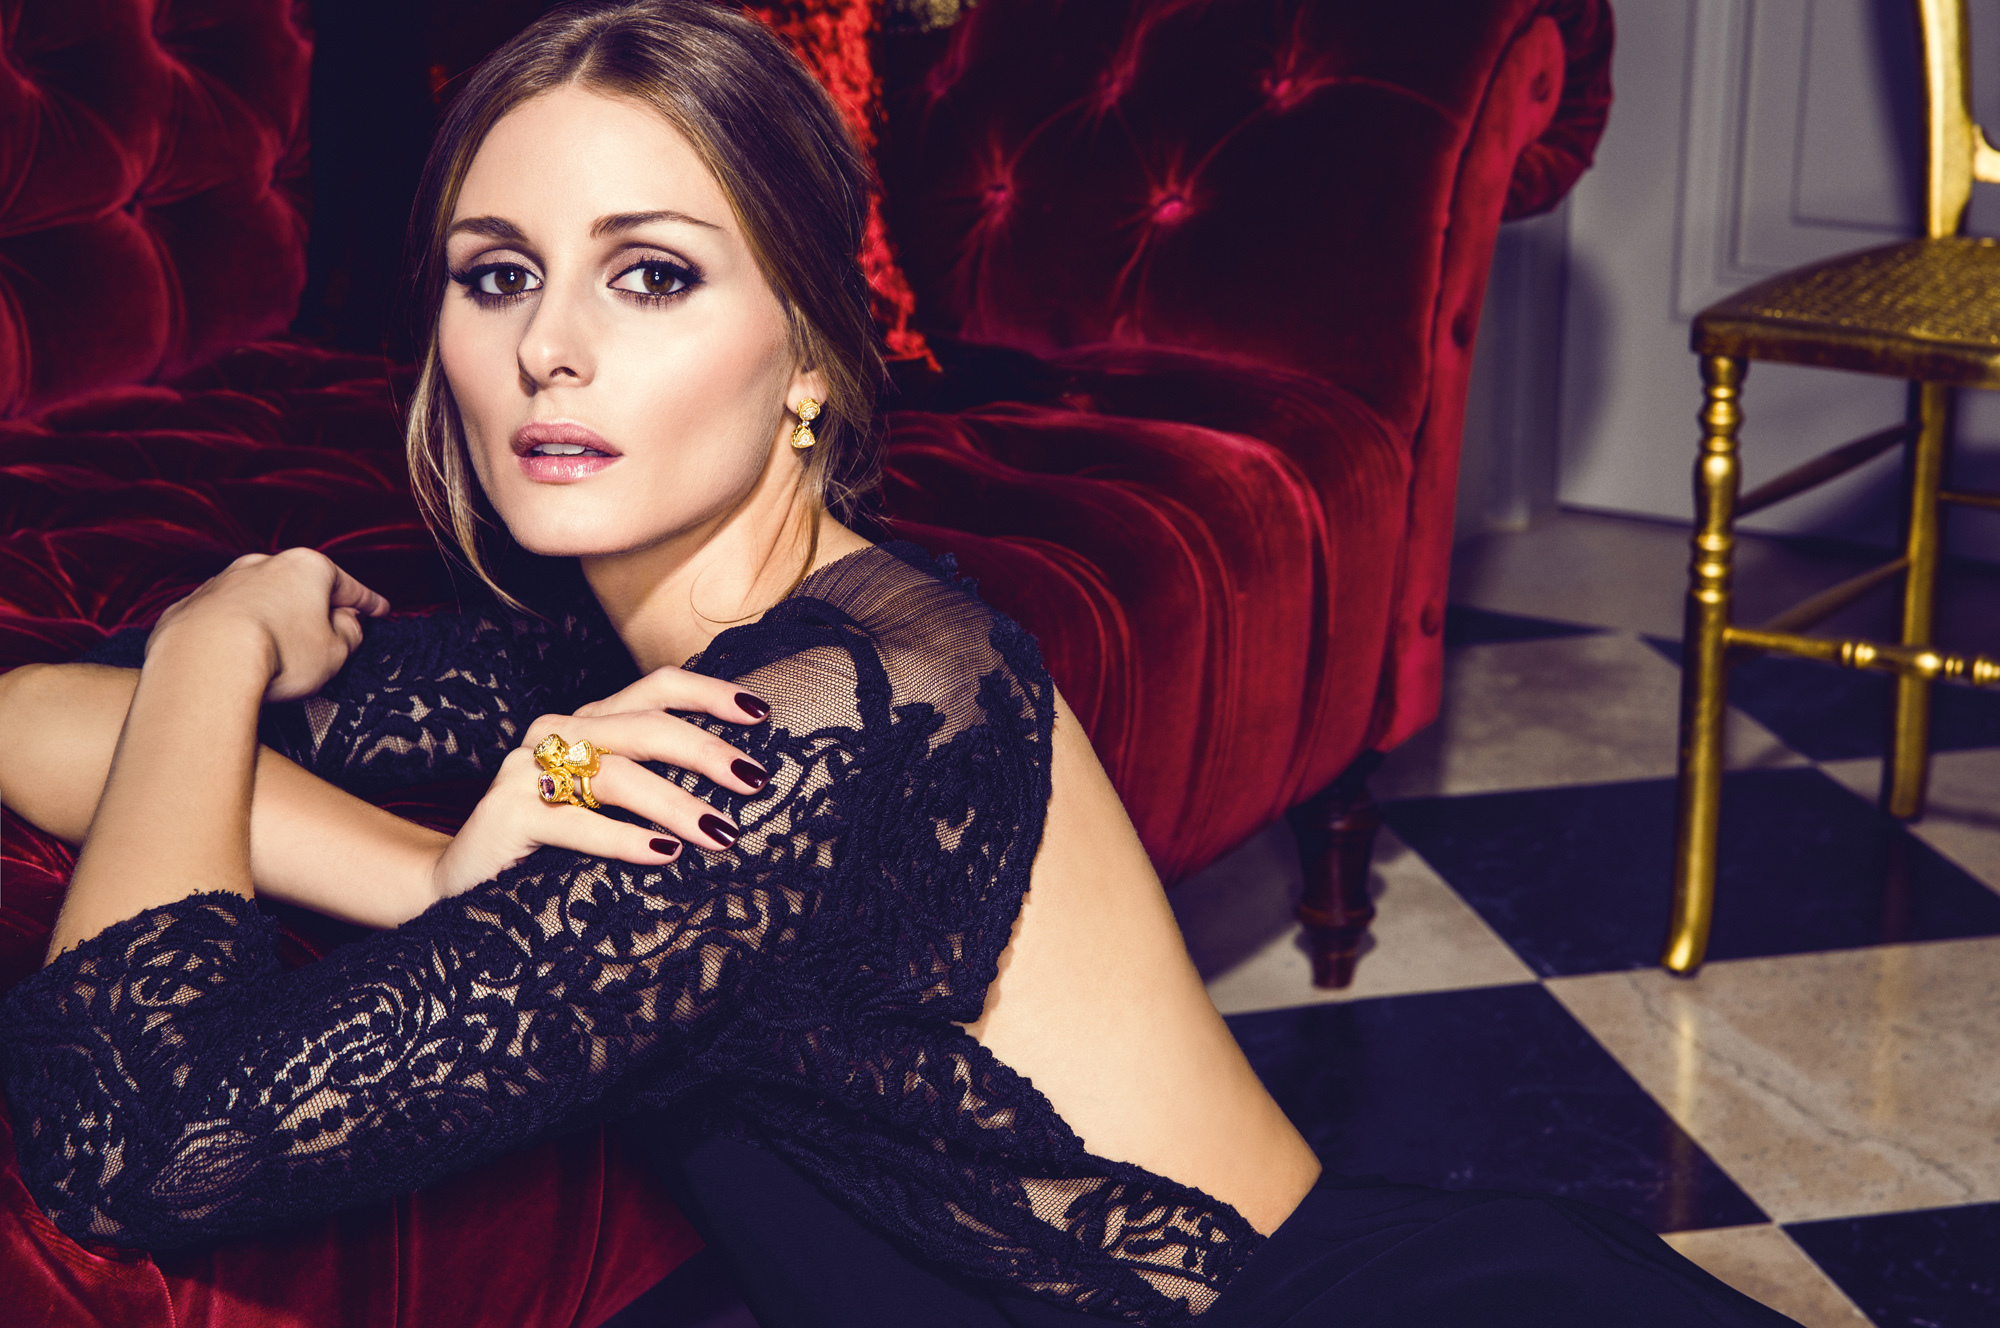 Olivia-Palermo-Wallpapers